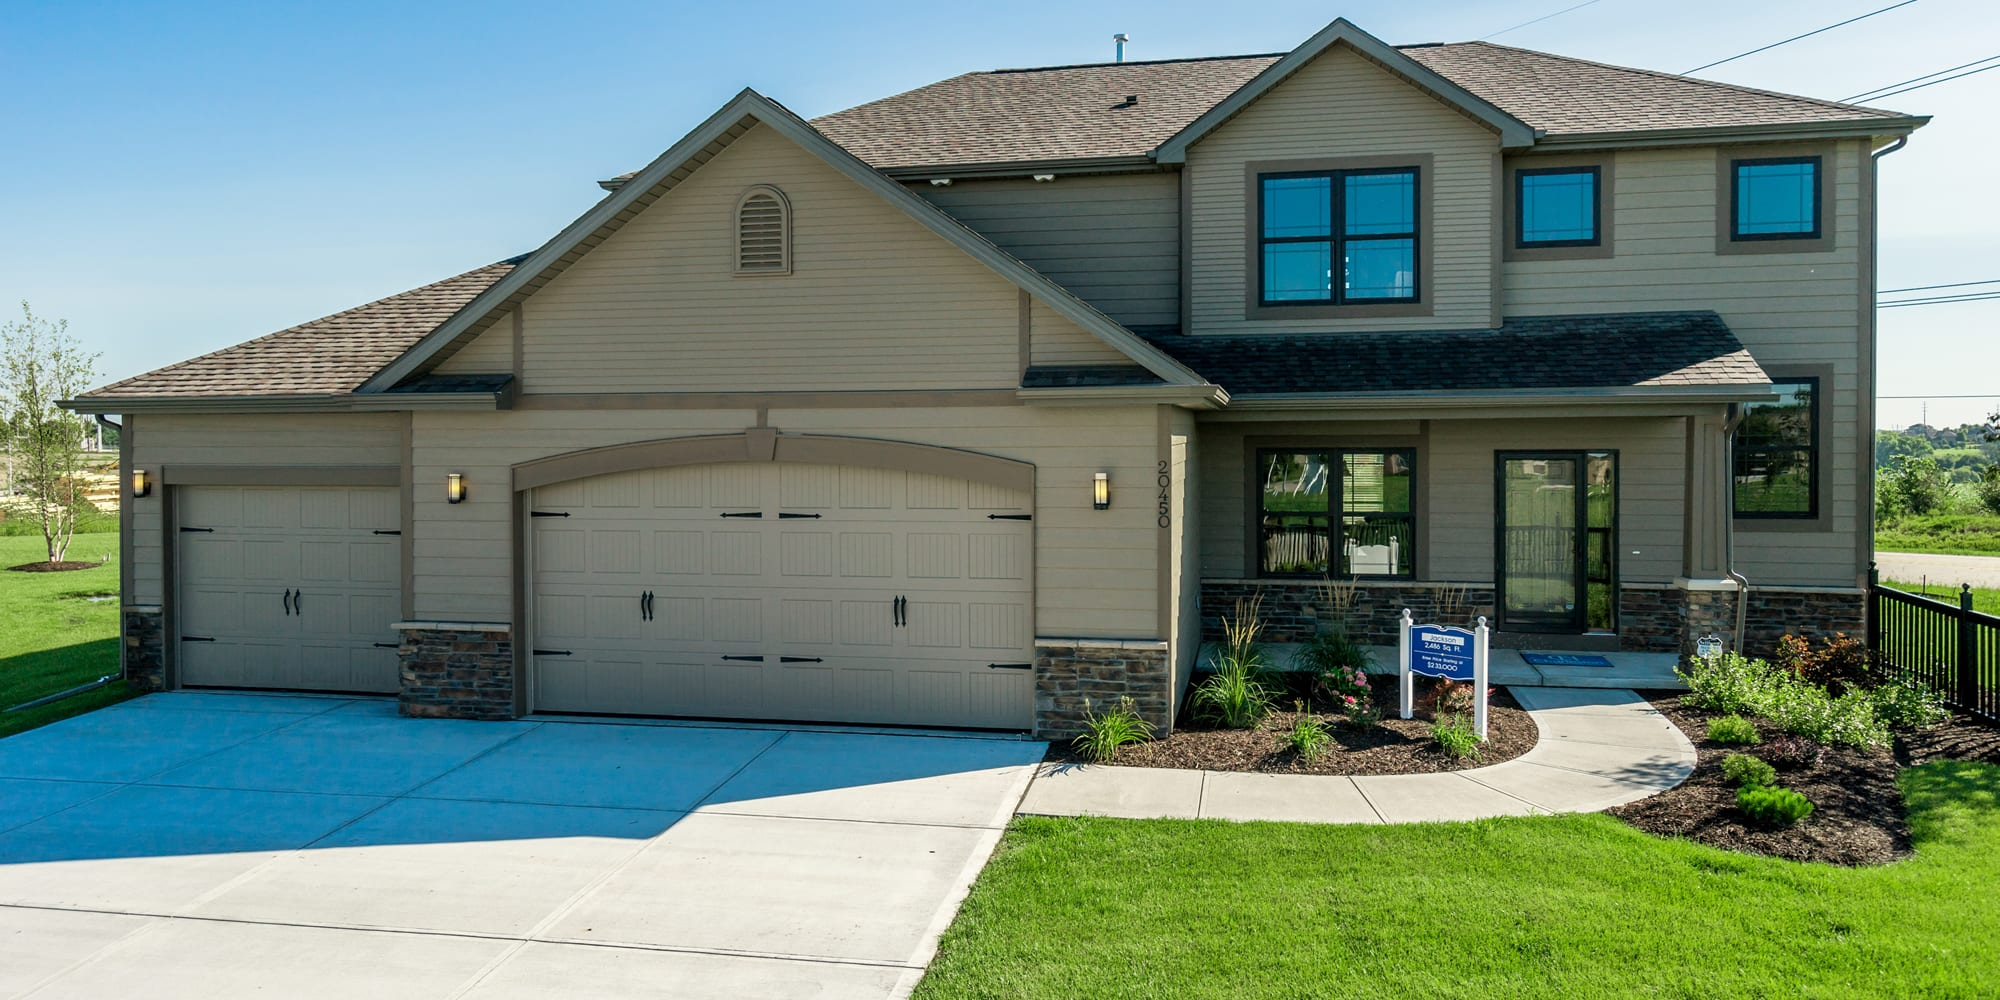 Model homes omaha nebraska